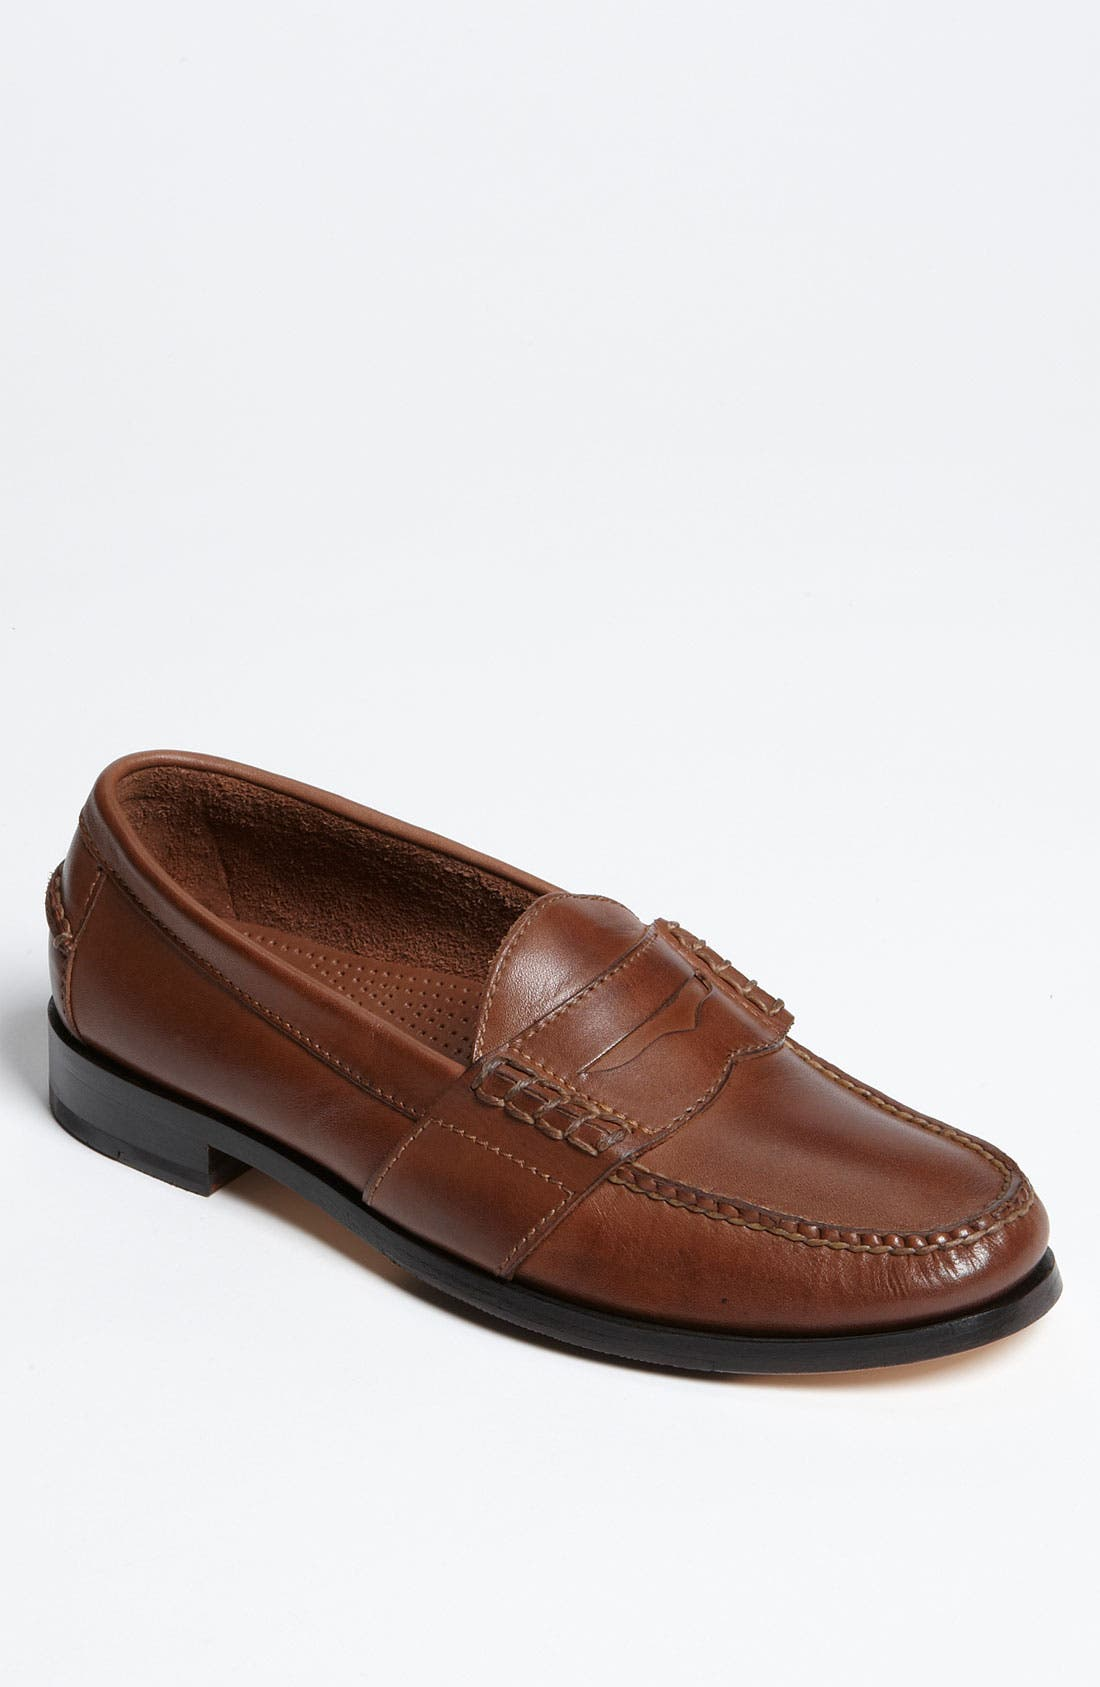 Alternate Image 1 Selected - Cole Haan 'Bowman' Loafer